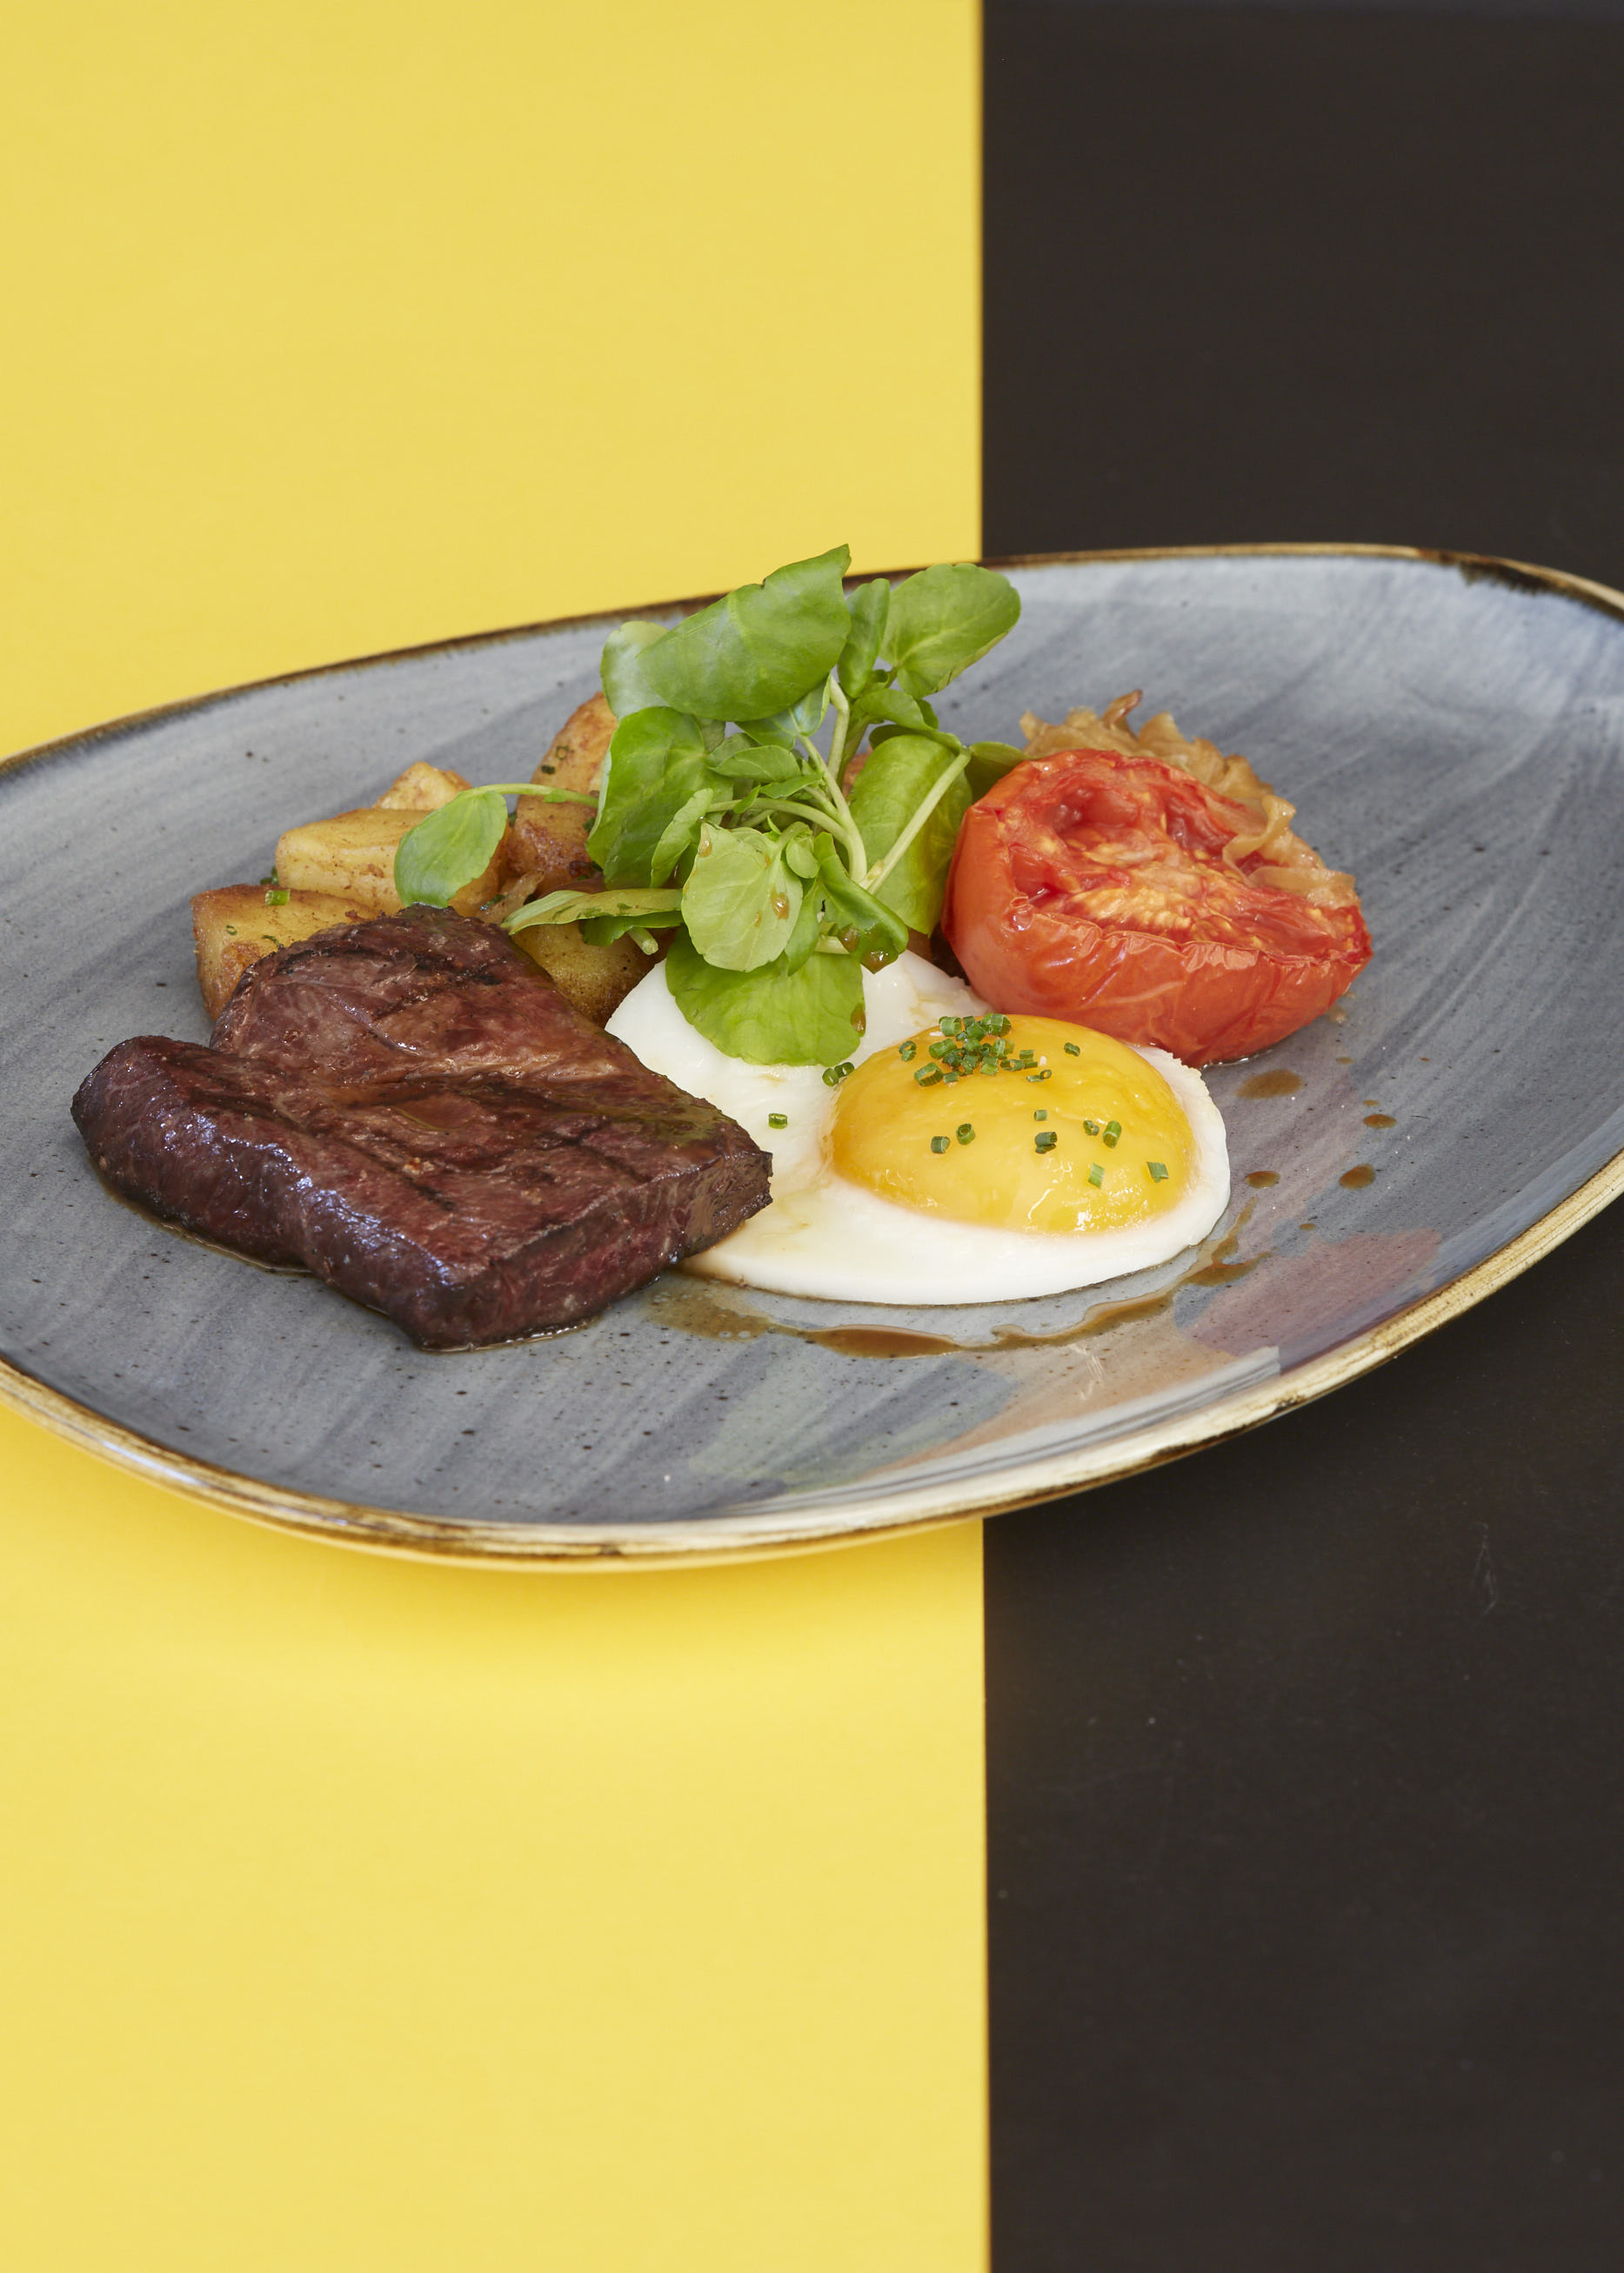 2020_02_12_Tate_Modern_Warhol_Brunch_egg_steak_45882